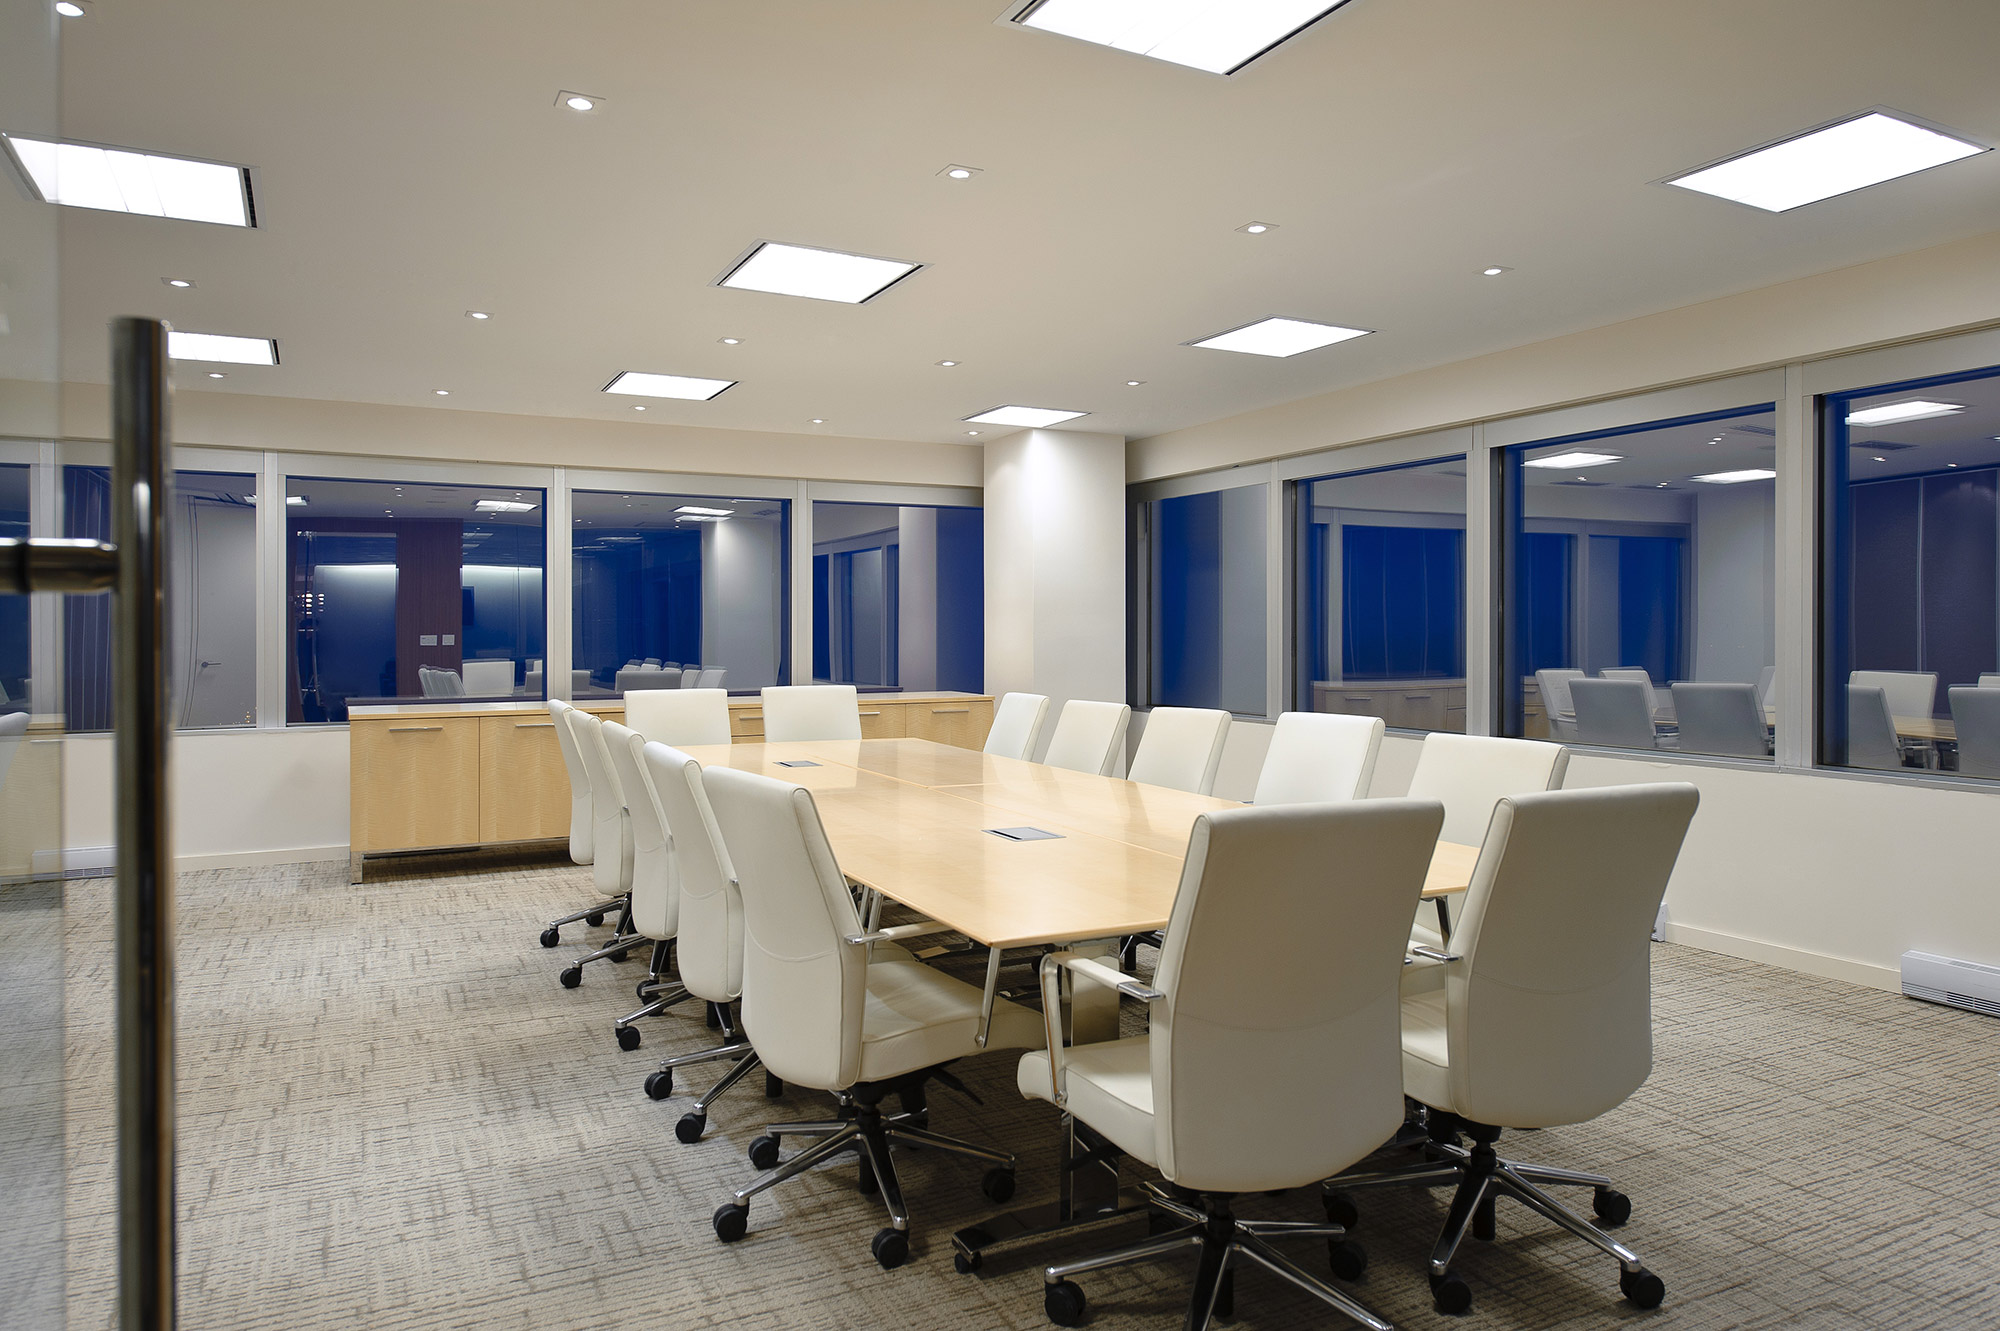 interior-design-legal-office-large-boardroom.jpg